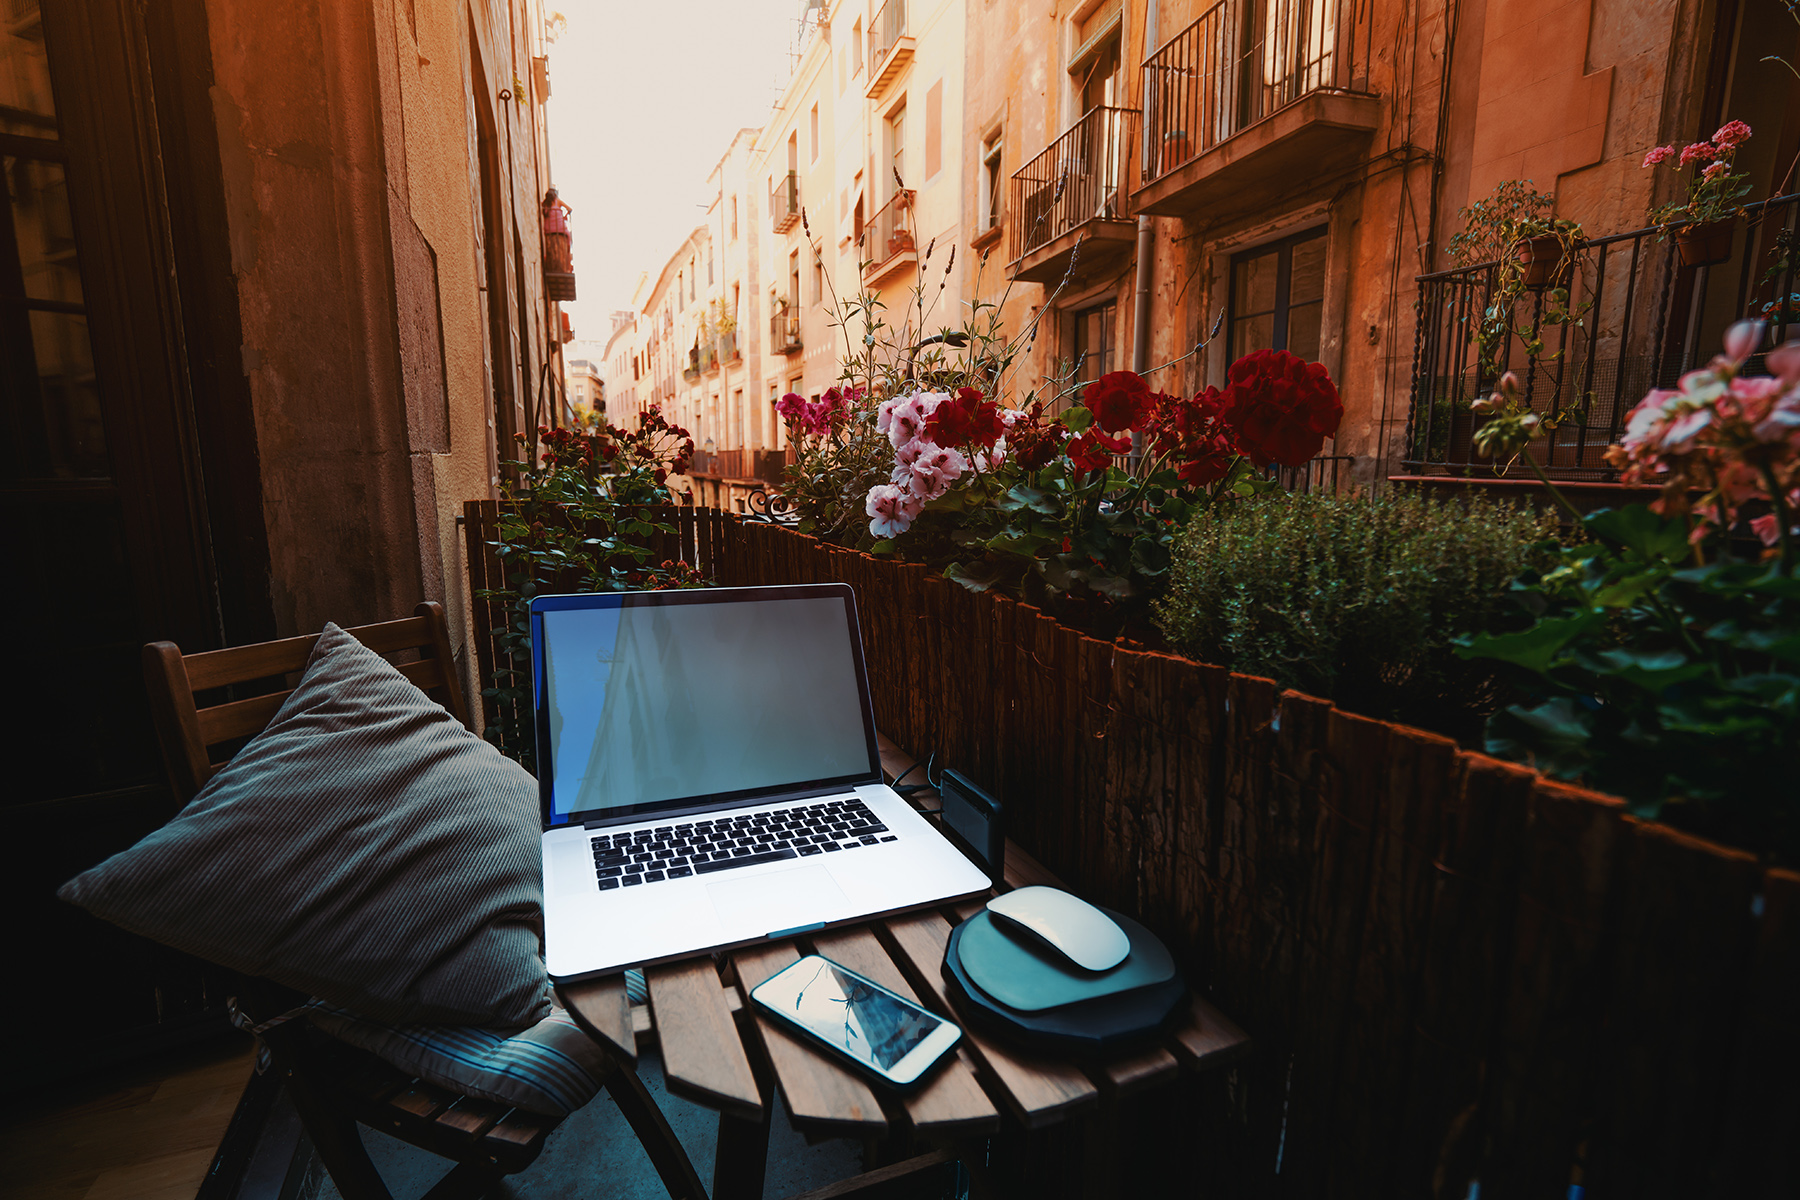 Working from home in a Spanish city